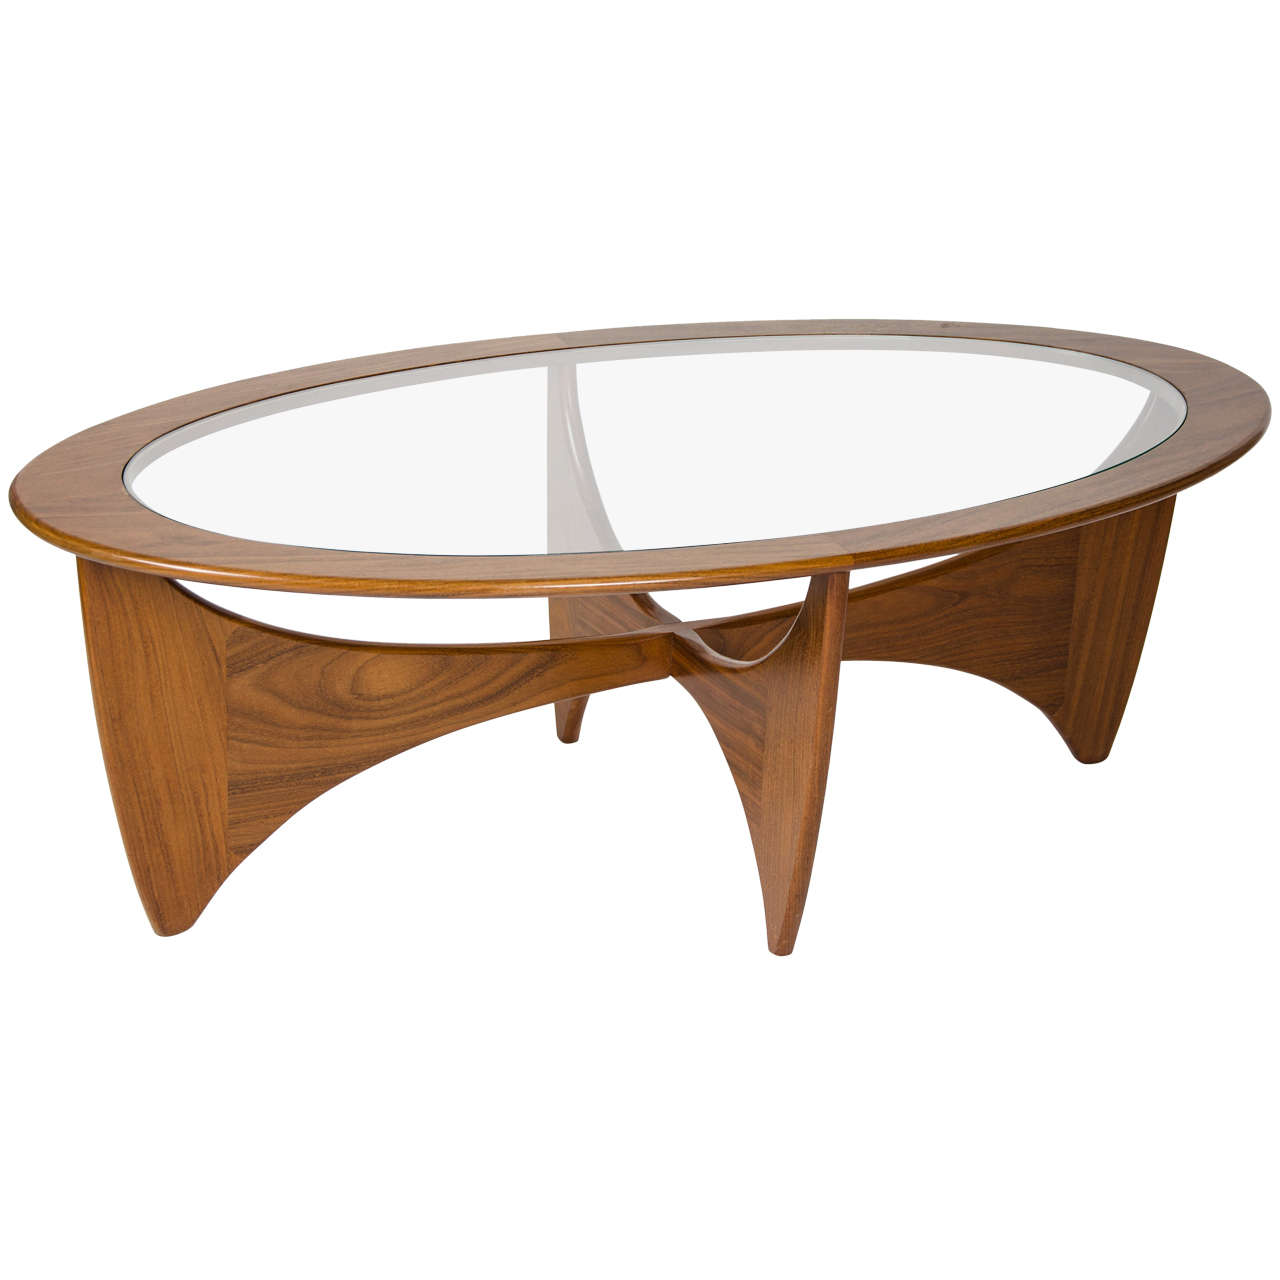 Teak Burger Coffee Table: Teak And Glass Coffee Table At 1stdibs